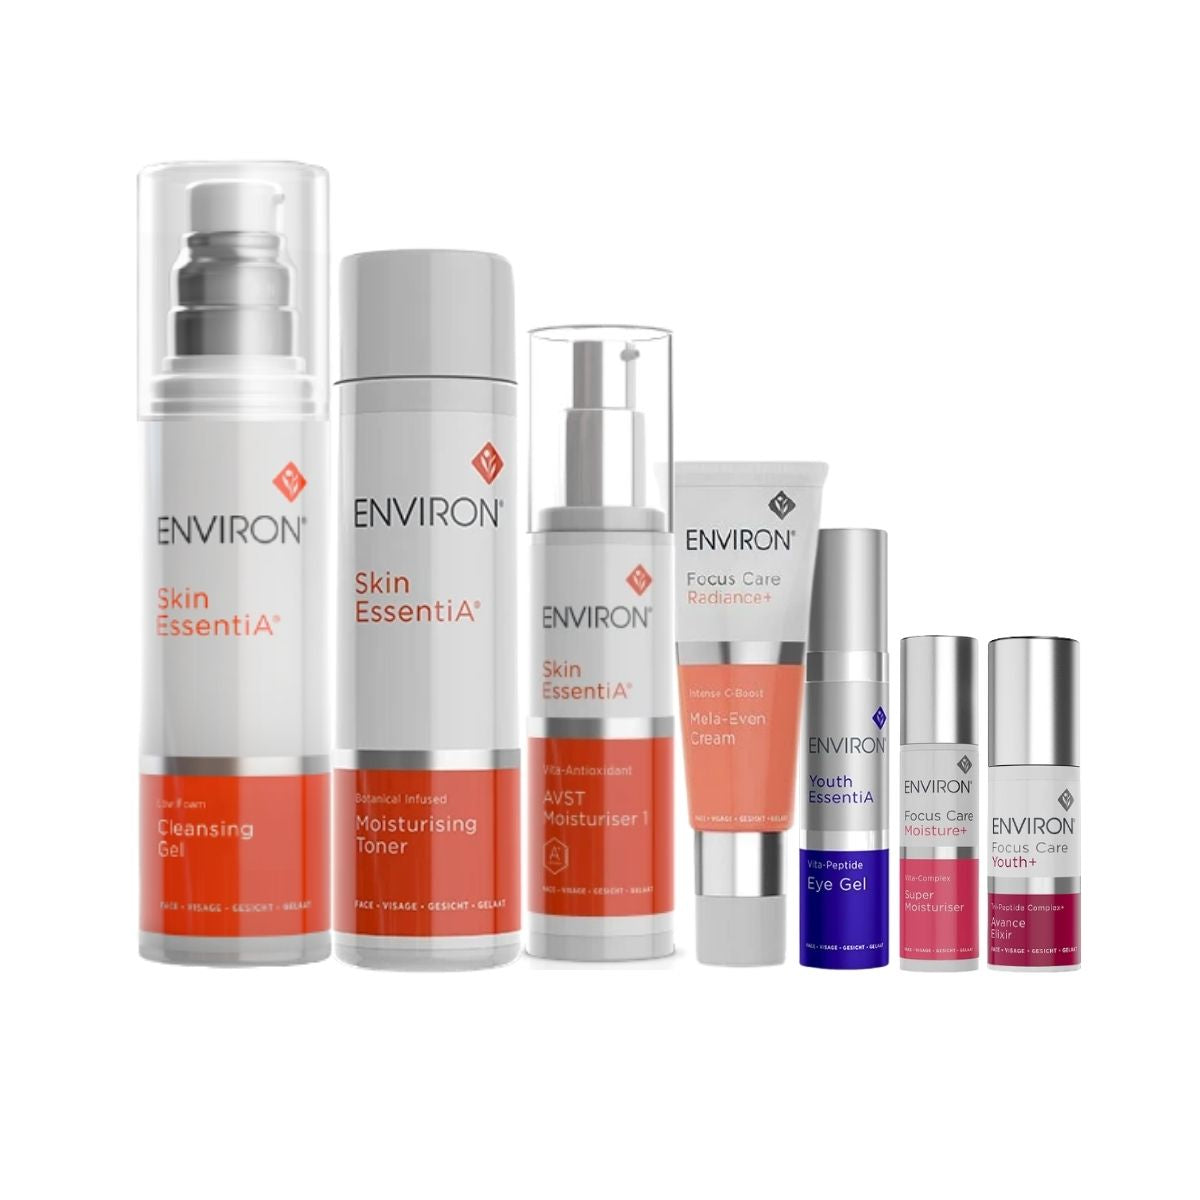 Environ Skin EssentiA Value Bundle with Cleansing Gel